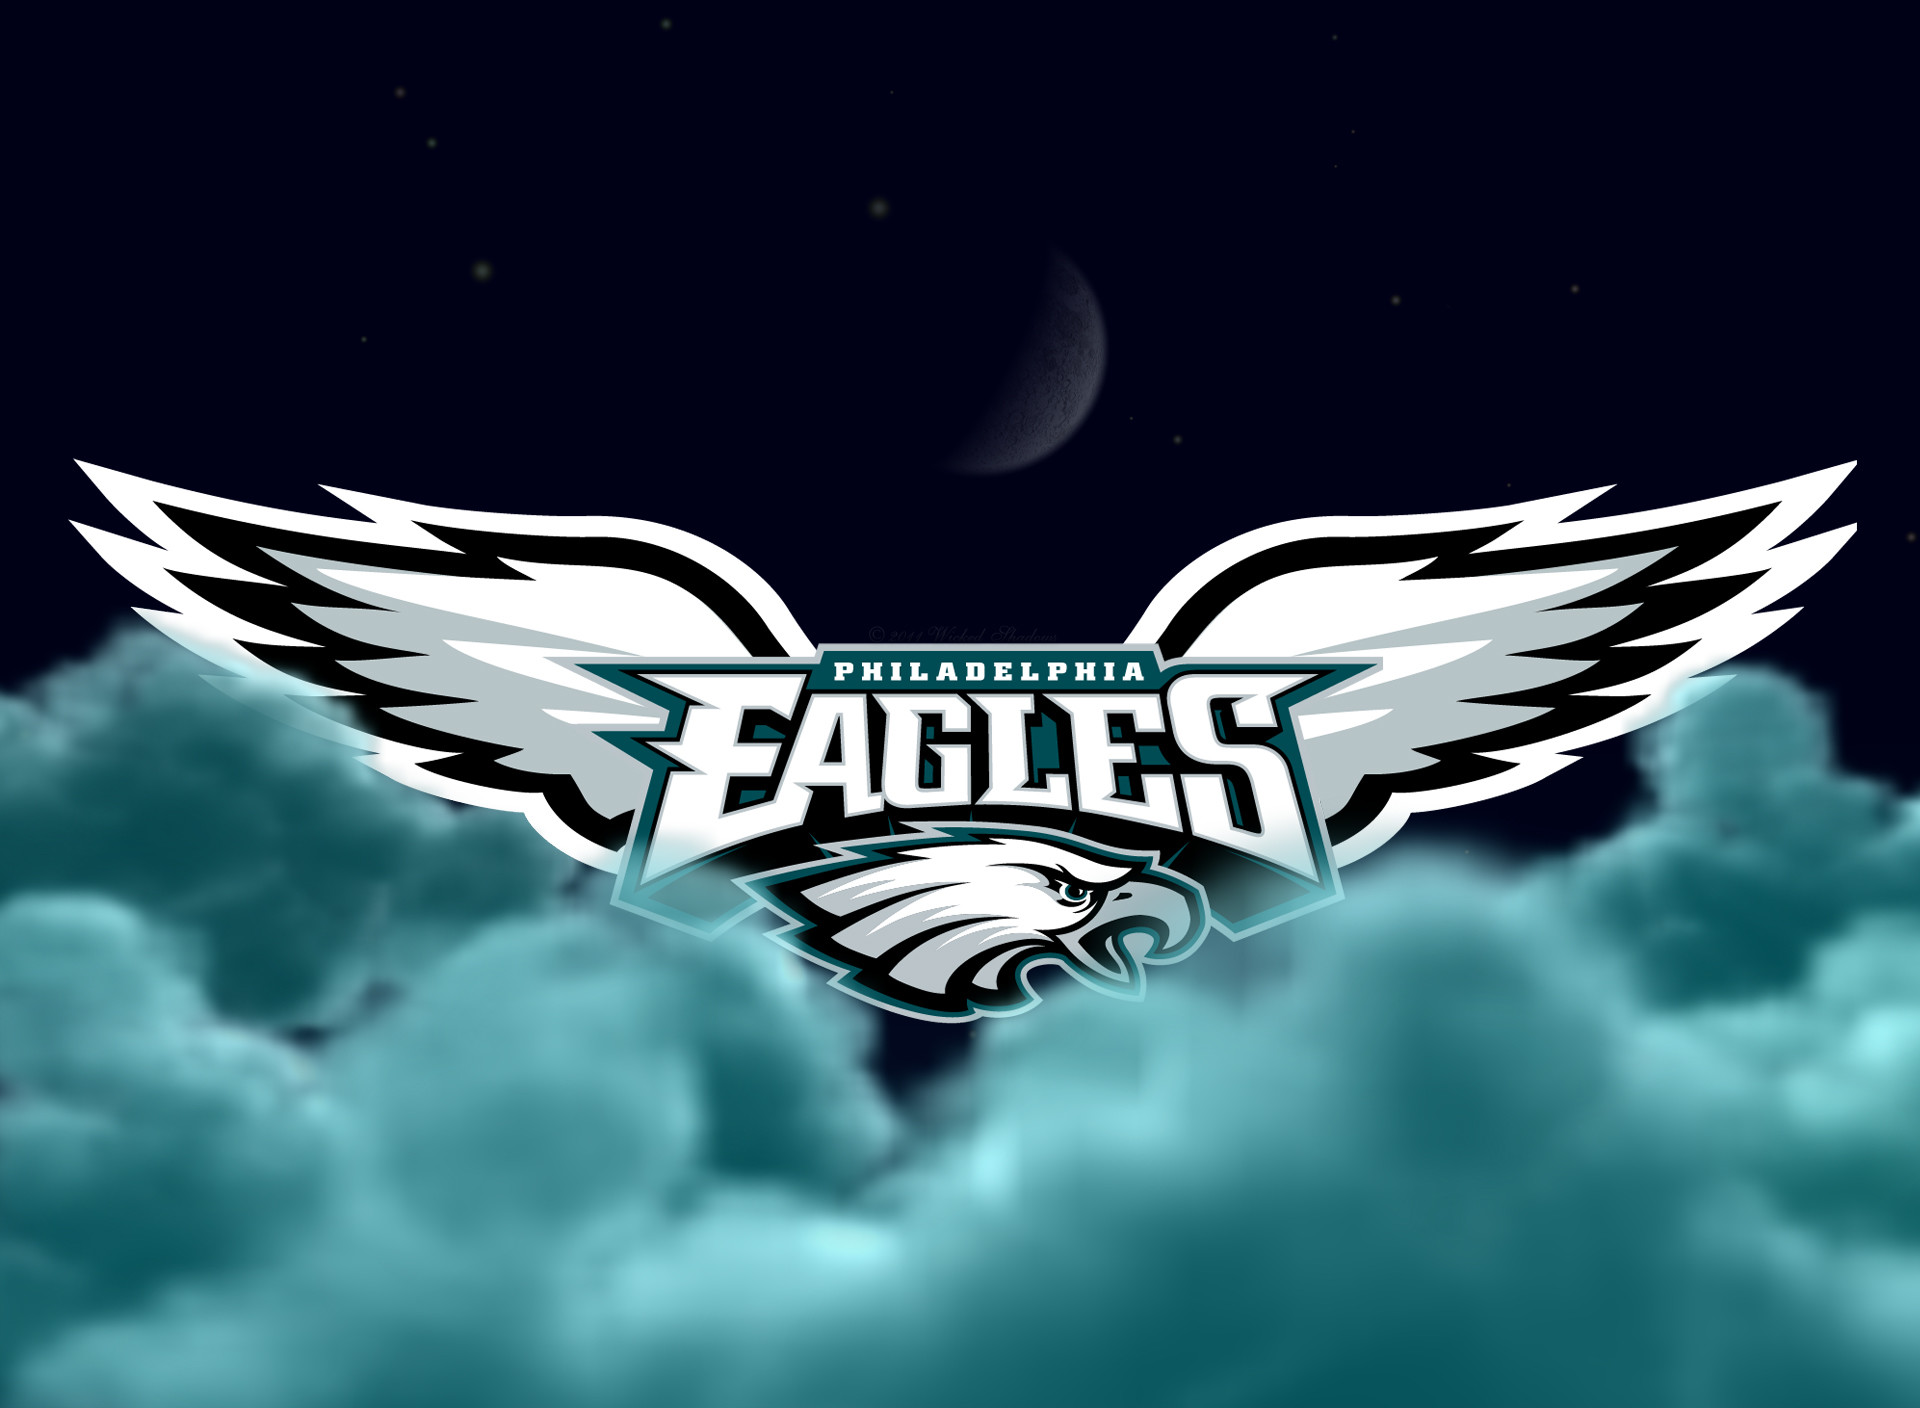 1920x1408 Philadelphia eagles wallpaper HD 1920×1200 Free Philadelphia Eagles  Wallpapers | Adorable Wallpapers | Desktop | Pinterest | Philadelphia  eagles wallpaper ...